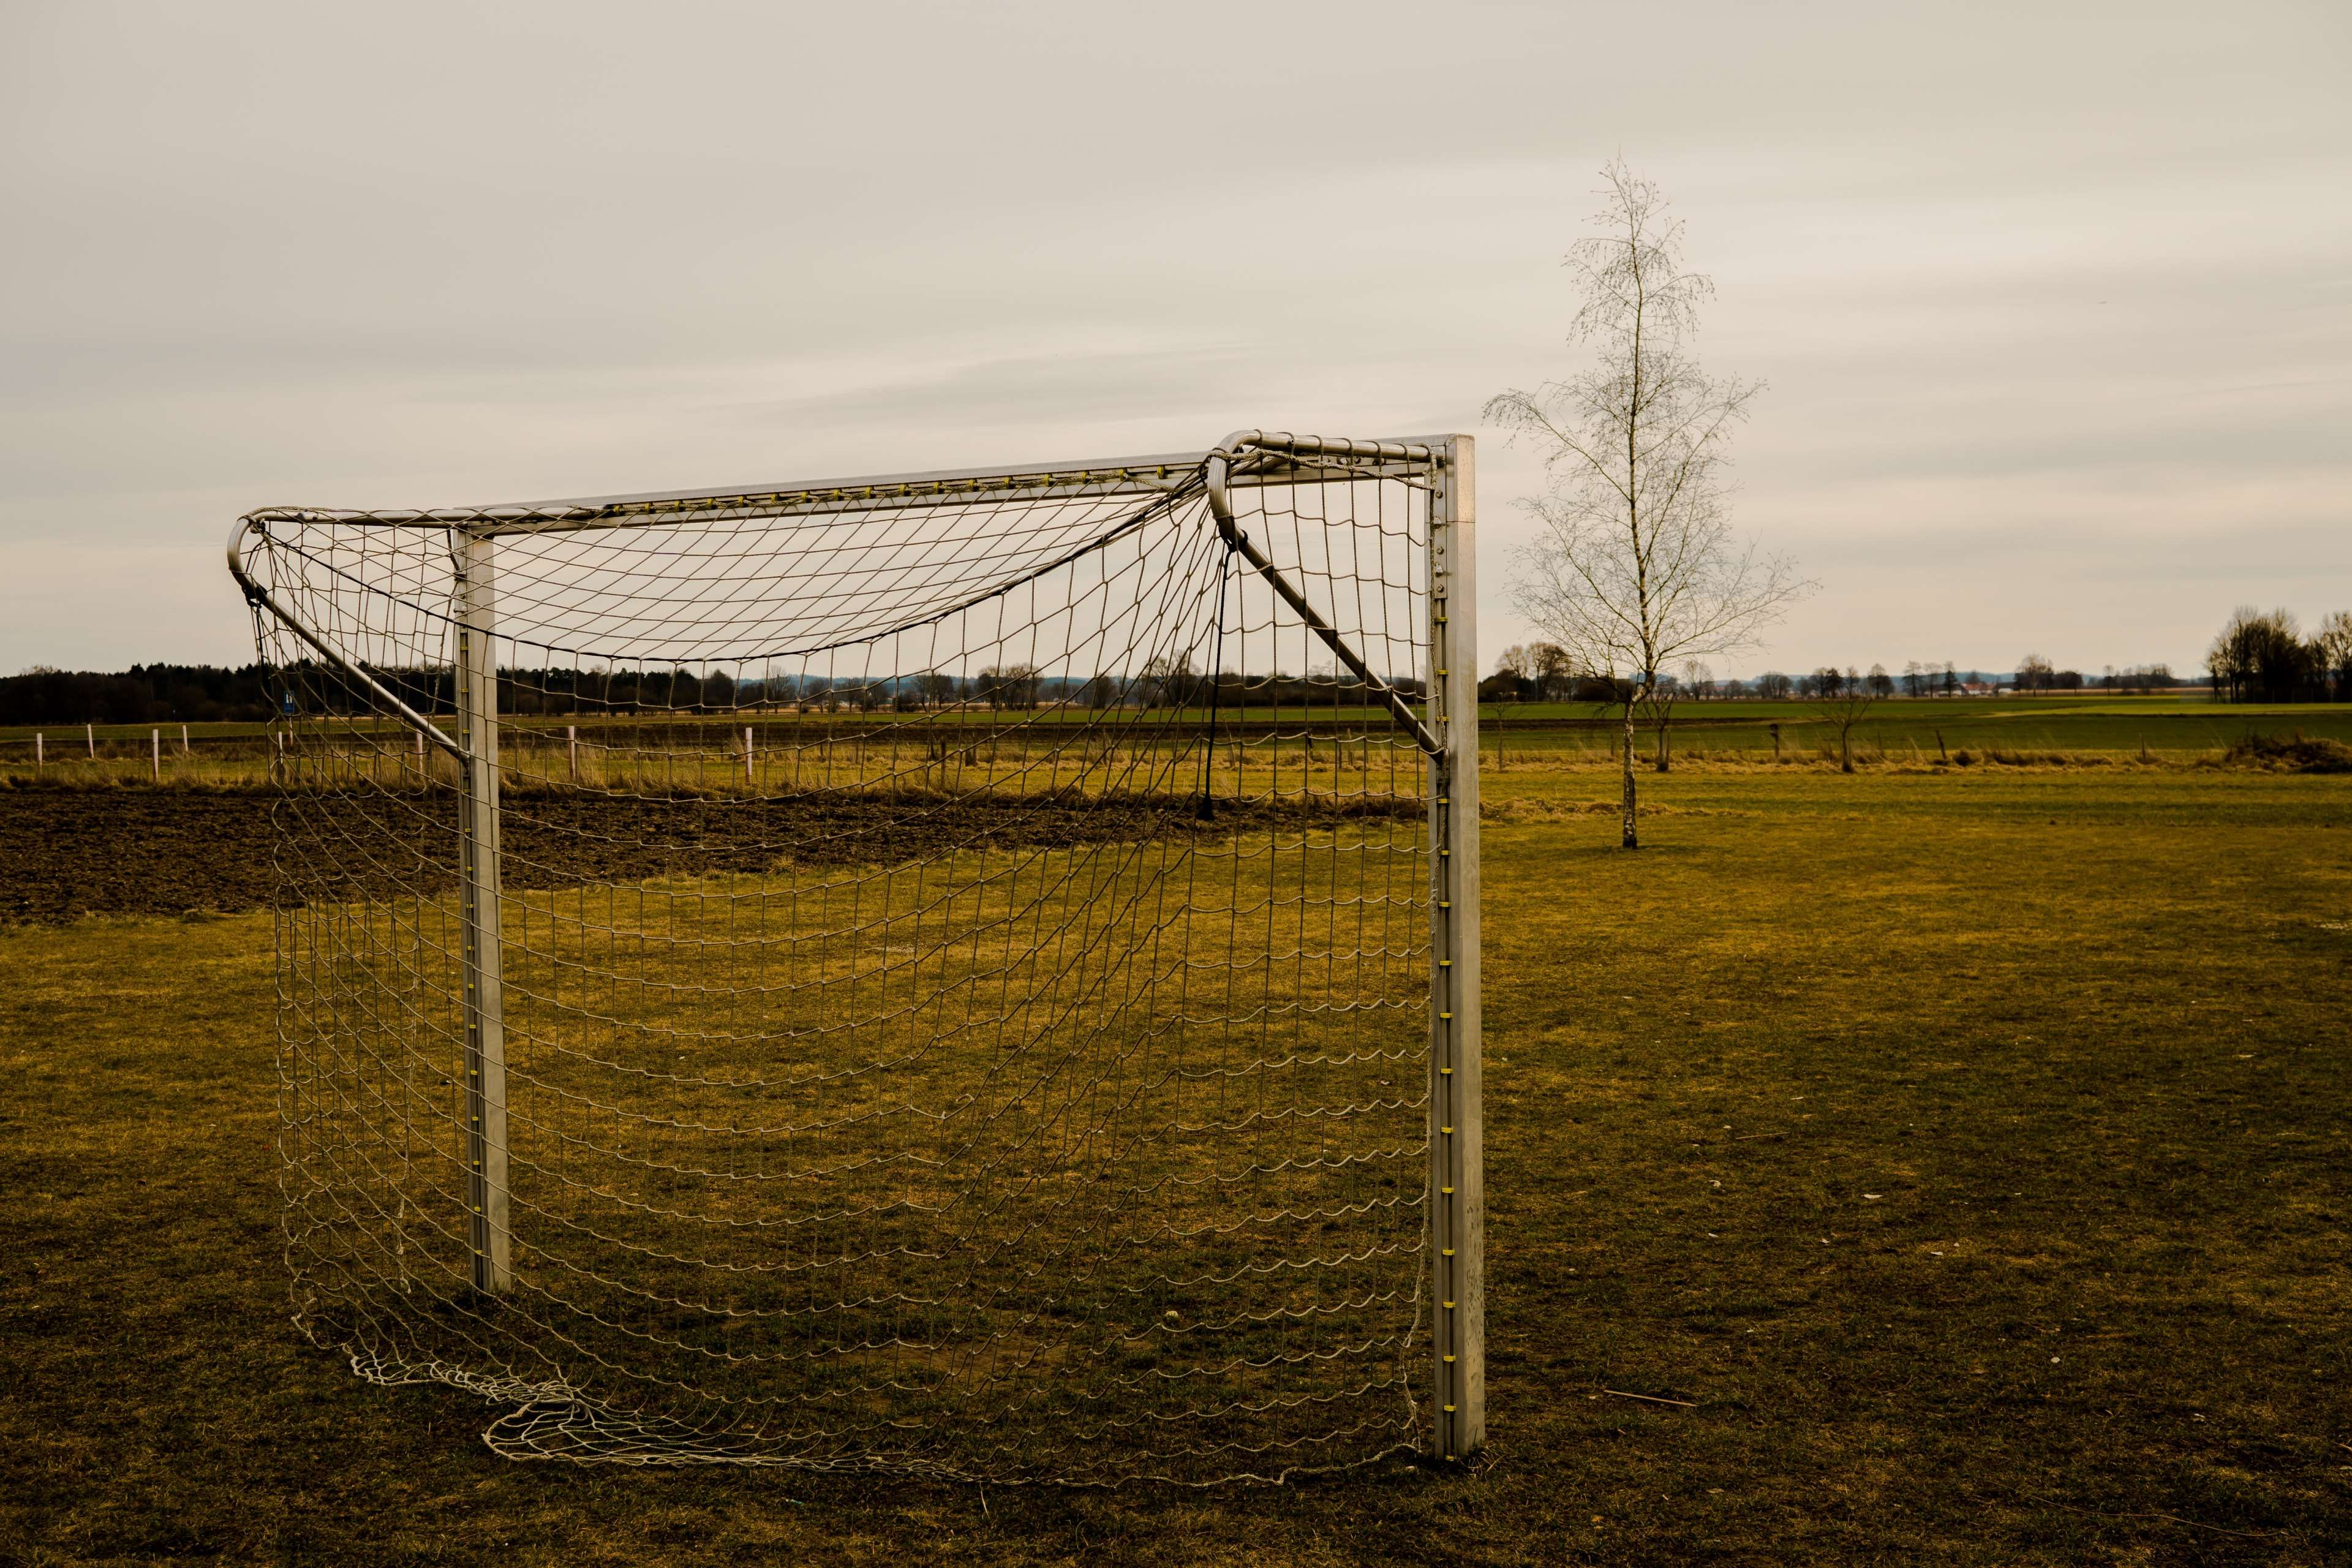 Pin By Ran Leibo On Football In 2020 Football Pitch Goal Net Football